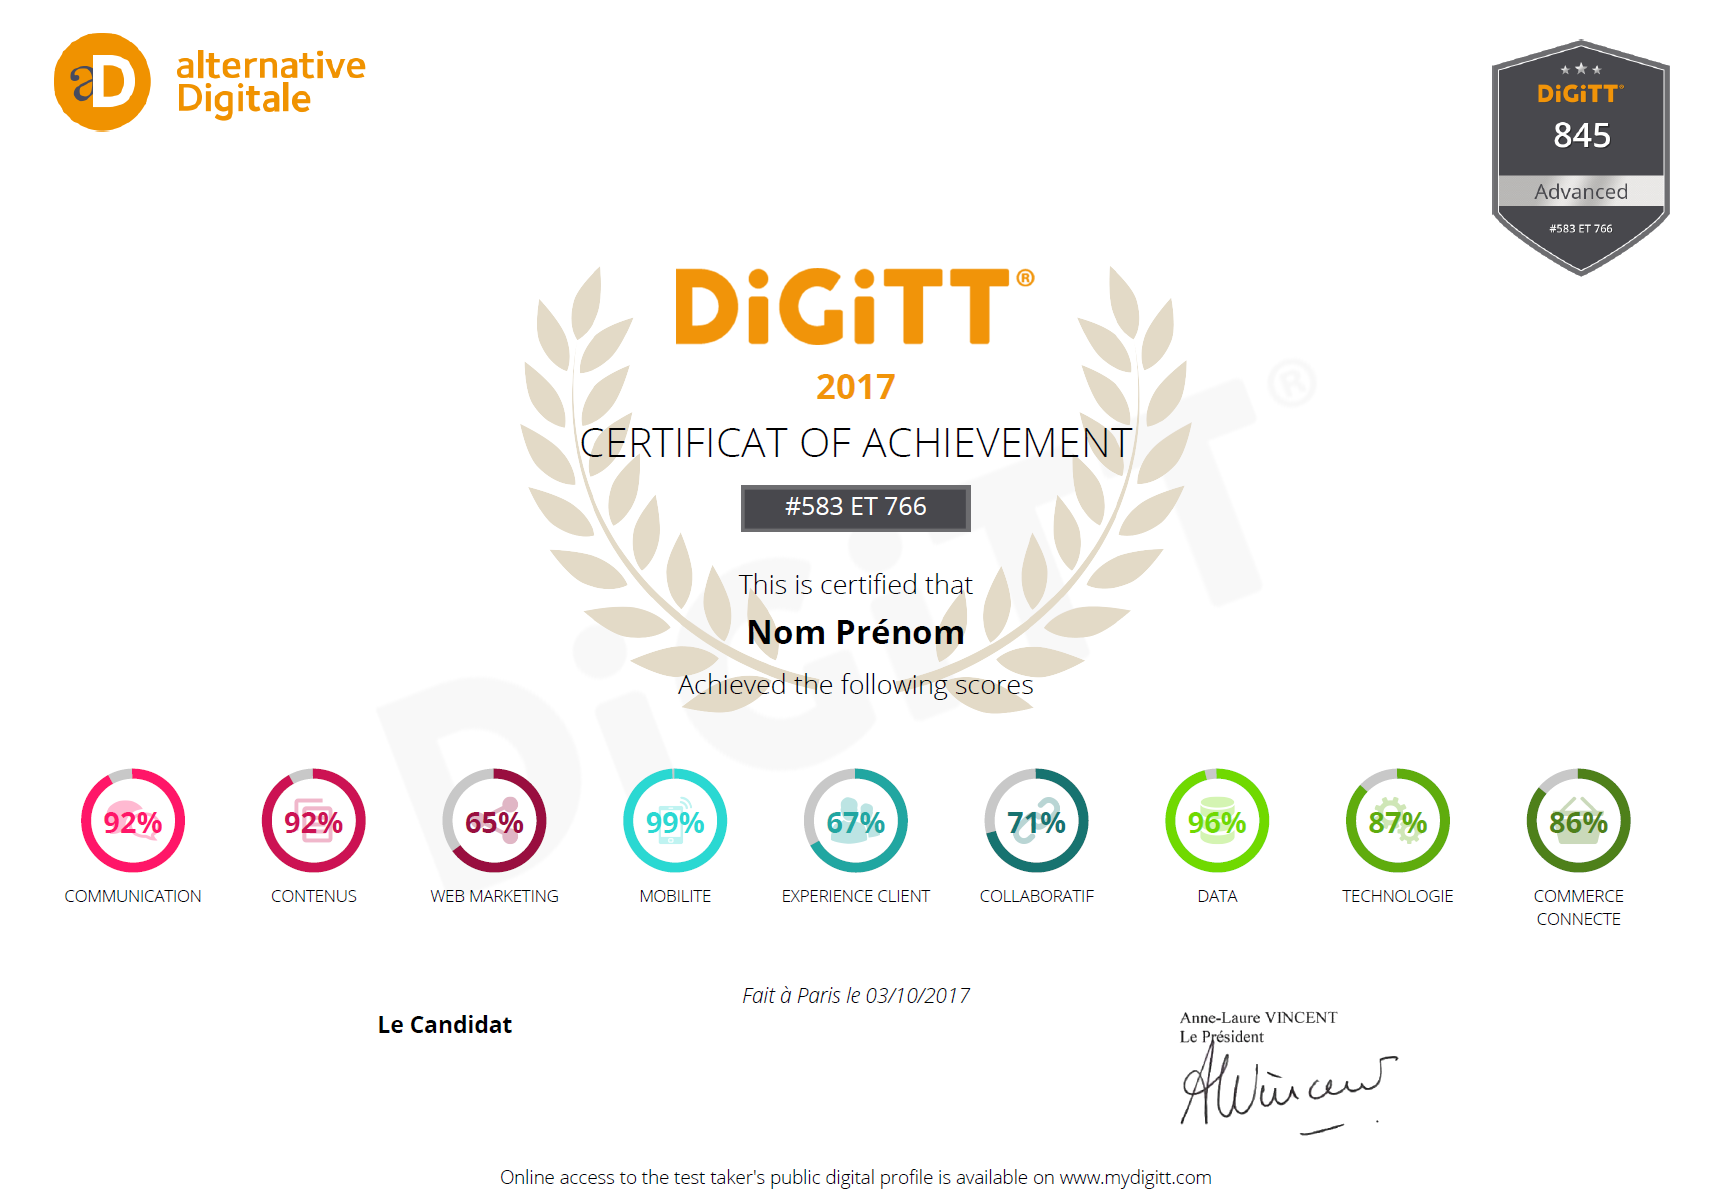 Attestation d'obtention du certificat DiGiTT